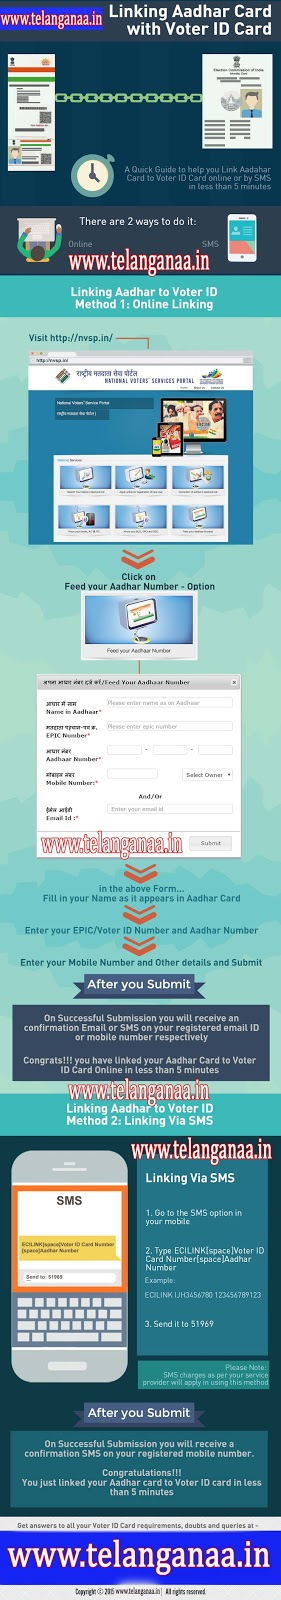 Aadhaar Card Link Voter Id Card Seeding